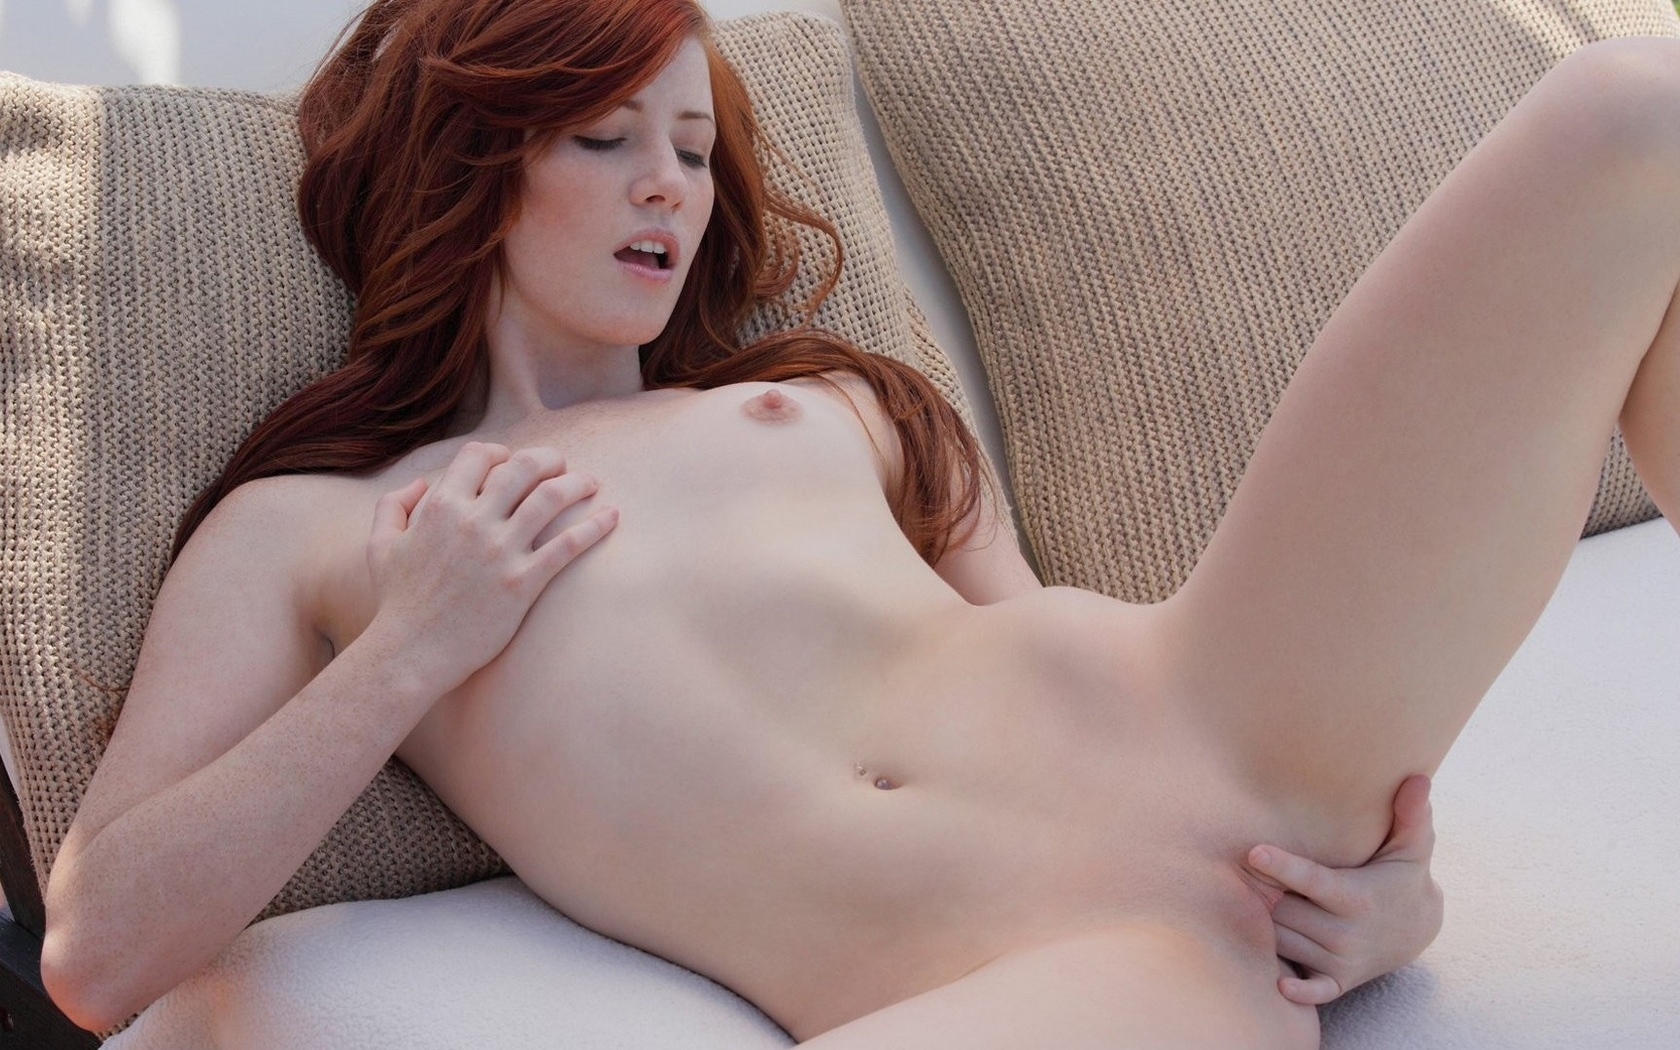 sweet-red-head-xxx-drunk-girls-pics